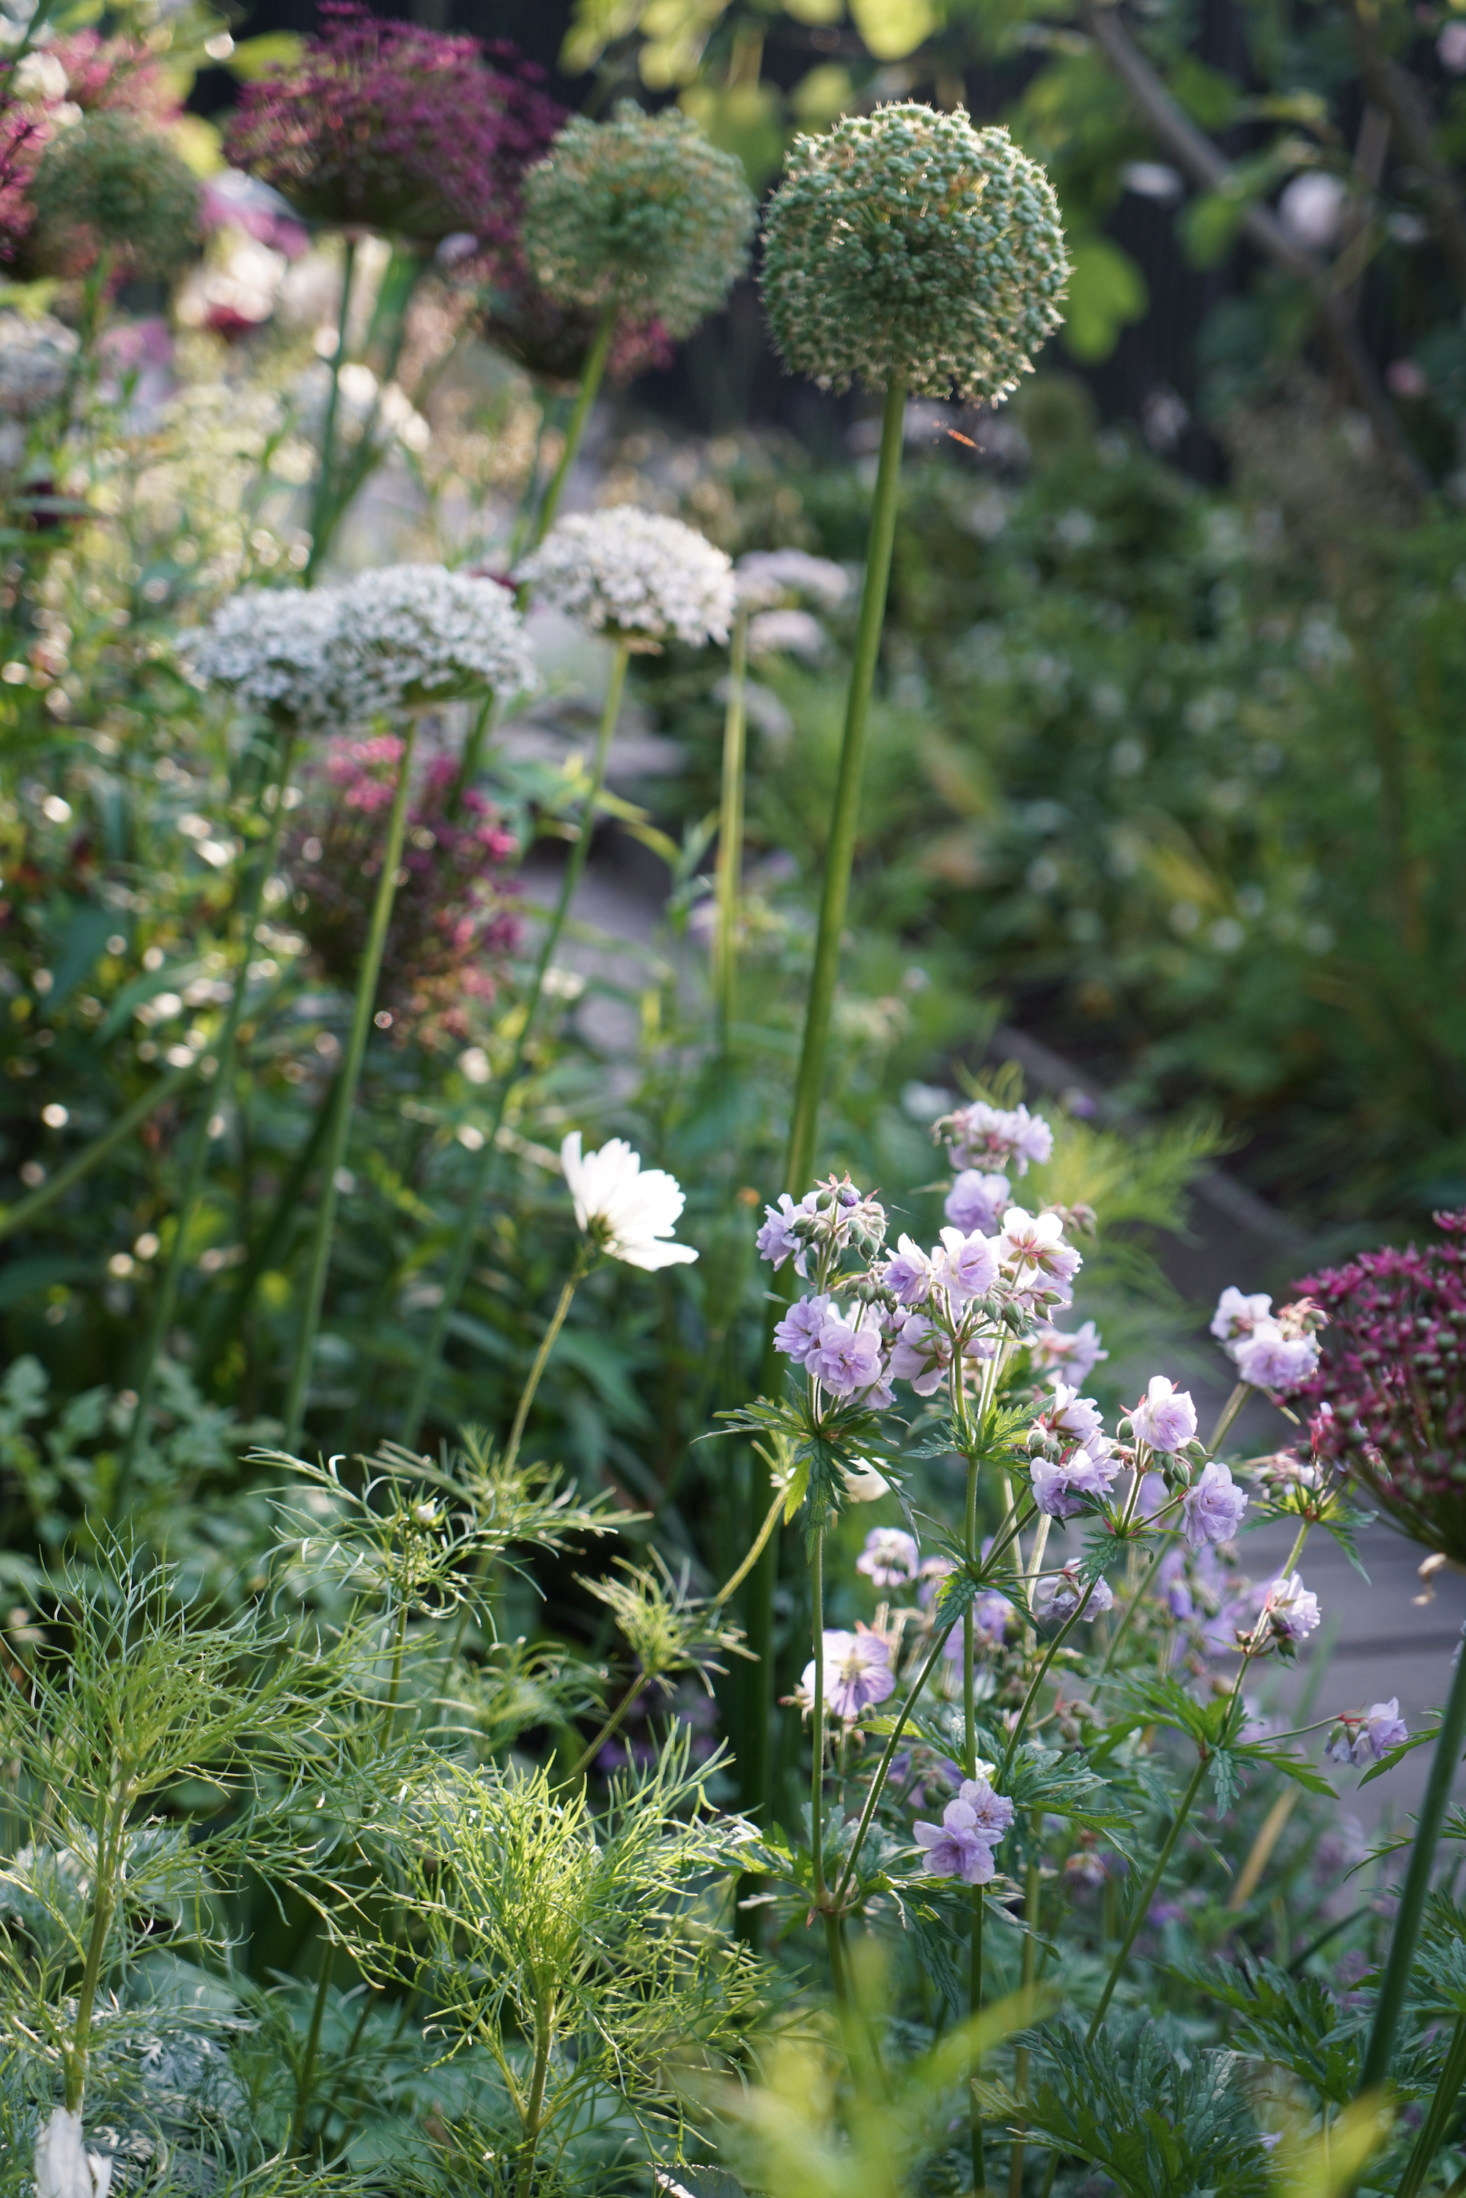 Allium varieties include A. nigrum, 'Mount Everest', and A. atropurpureum.